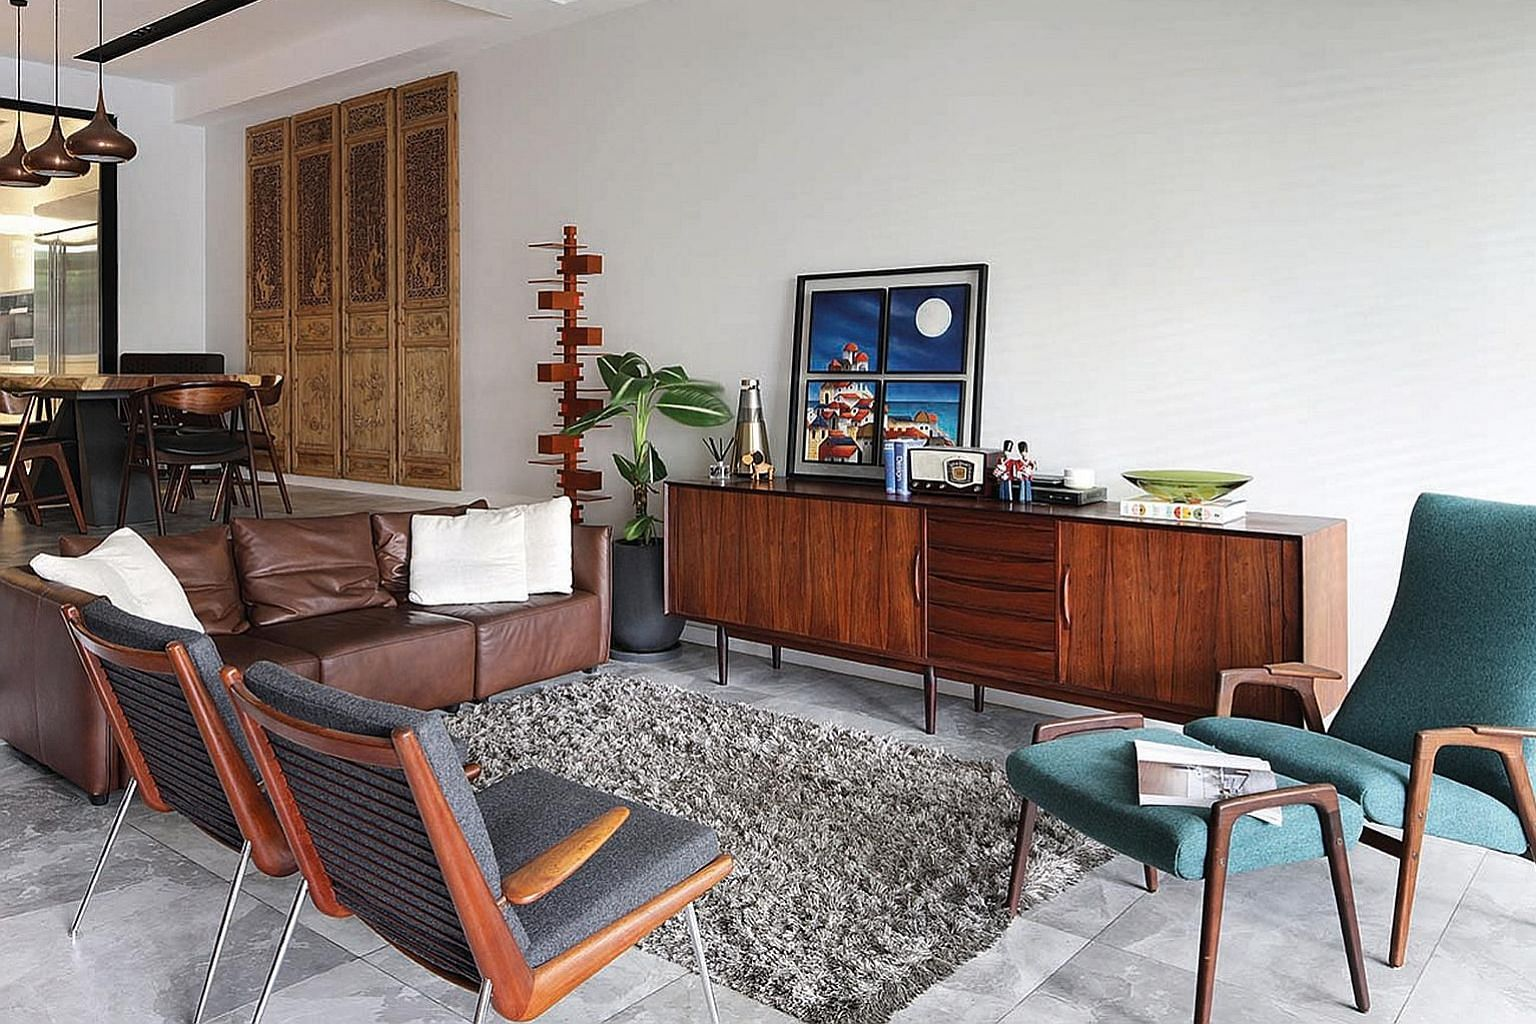 The look of the living area may be part minimalist and part vintage, but when brought together, harmonise to form a cosy and inviting interior.